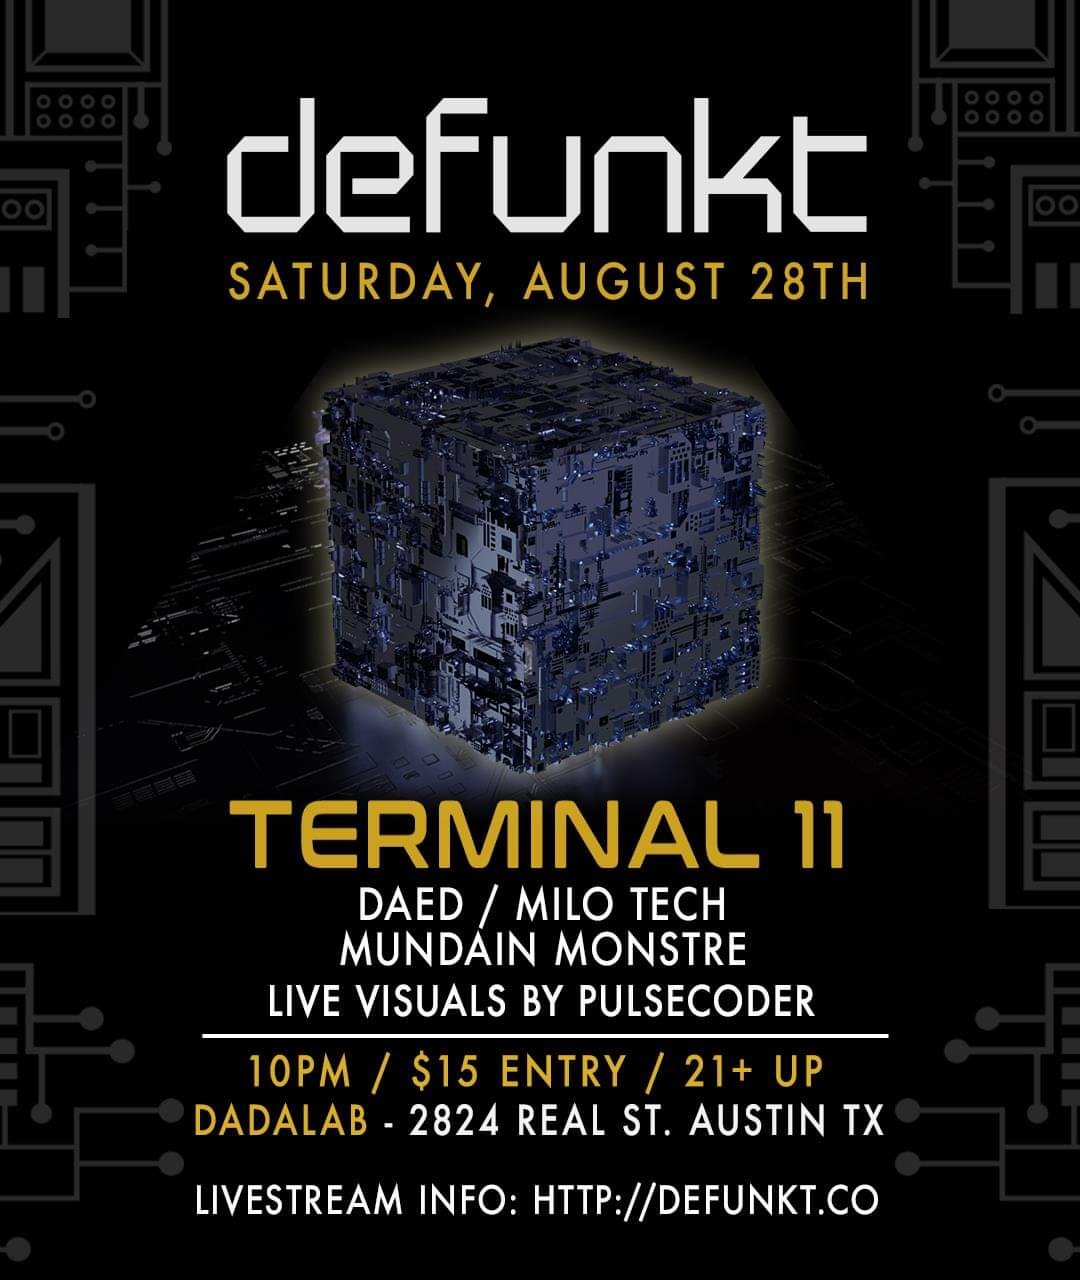 Defunkt at Dadalab Feat. Terminal 11 - Flyer front